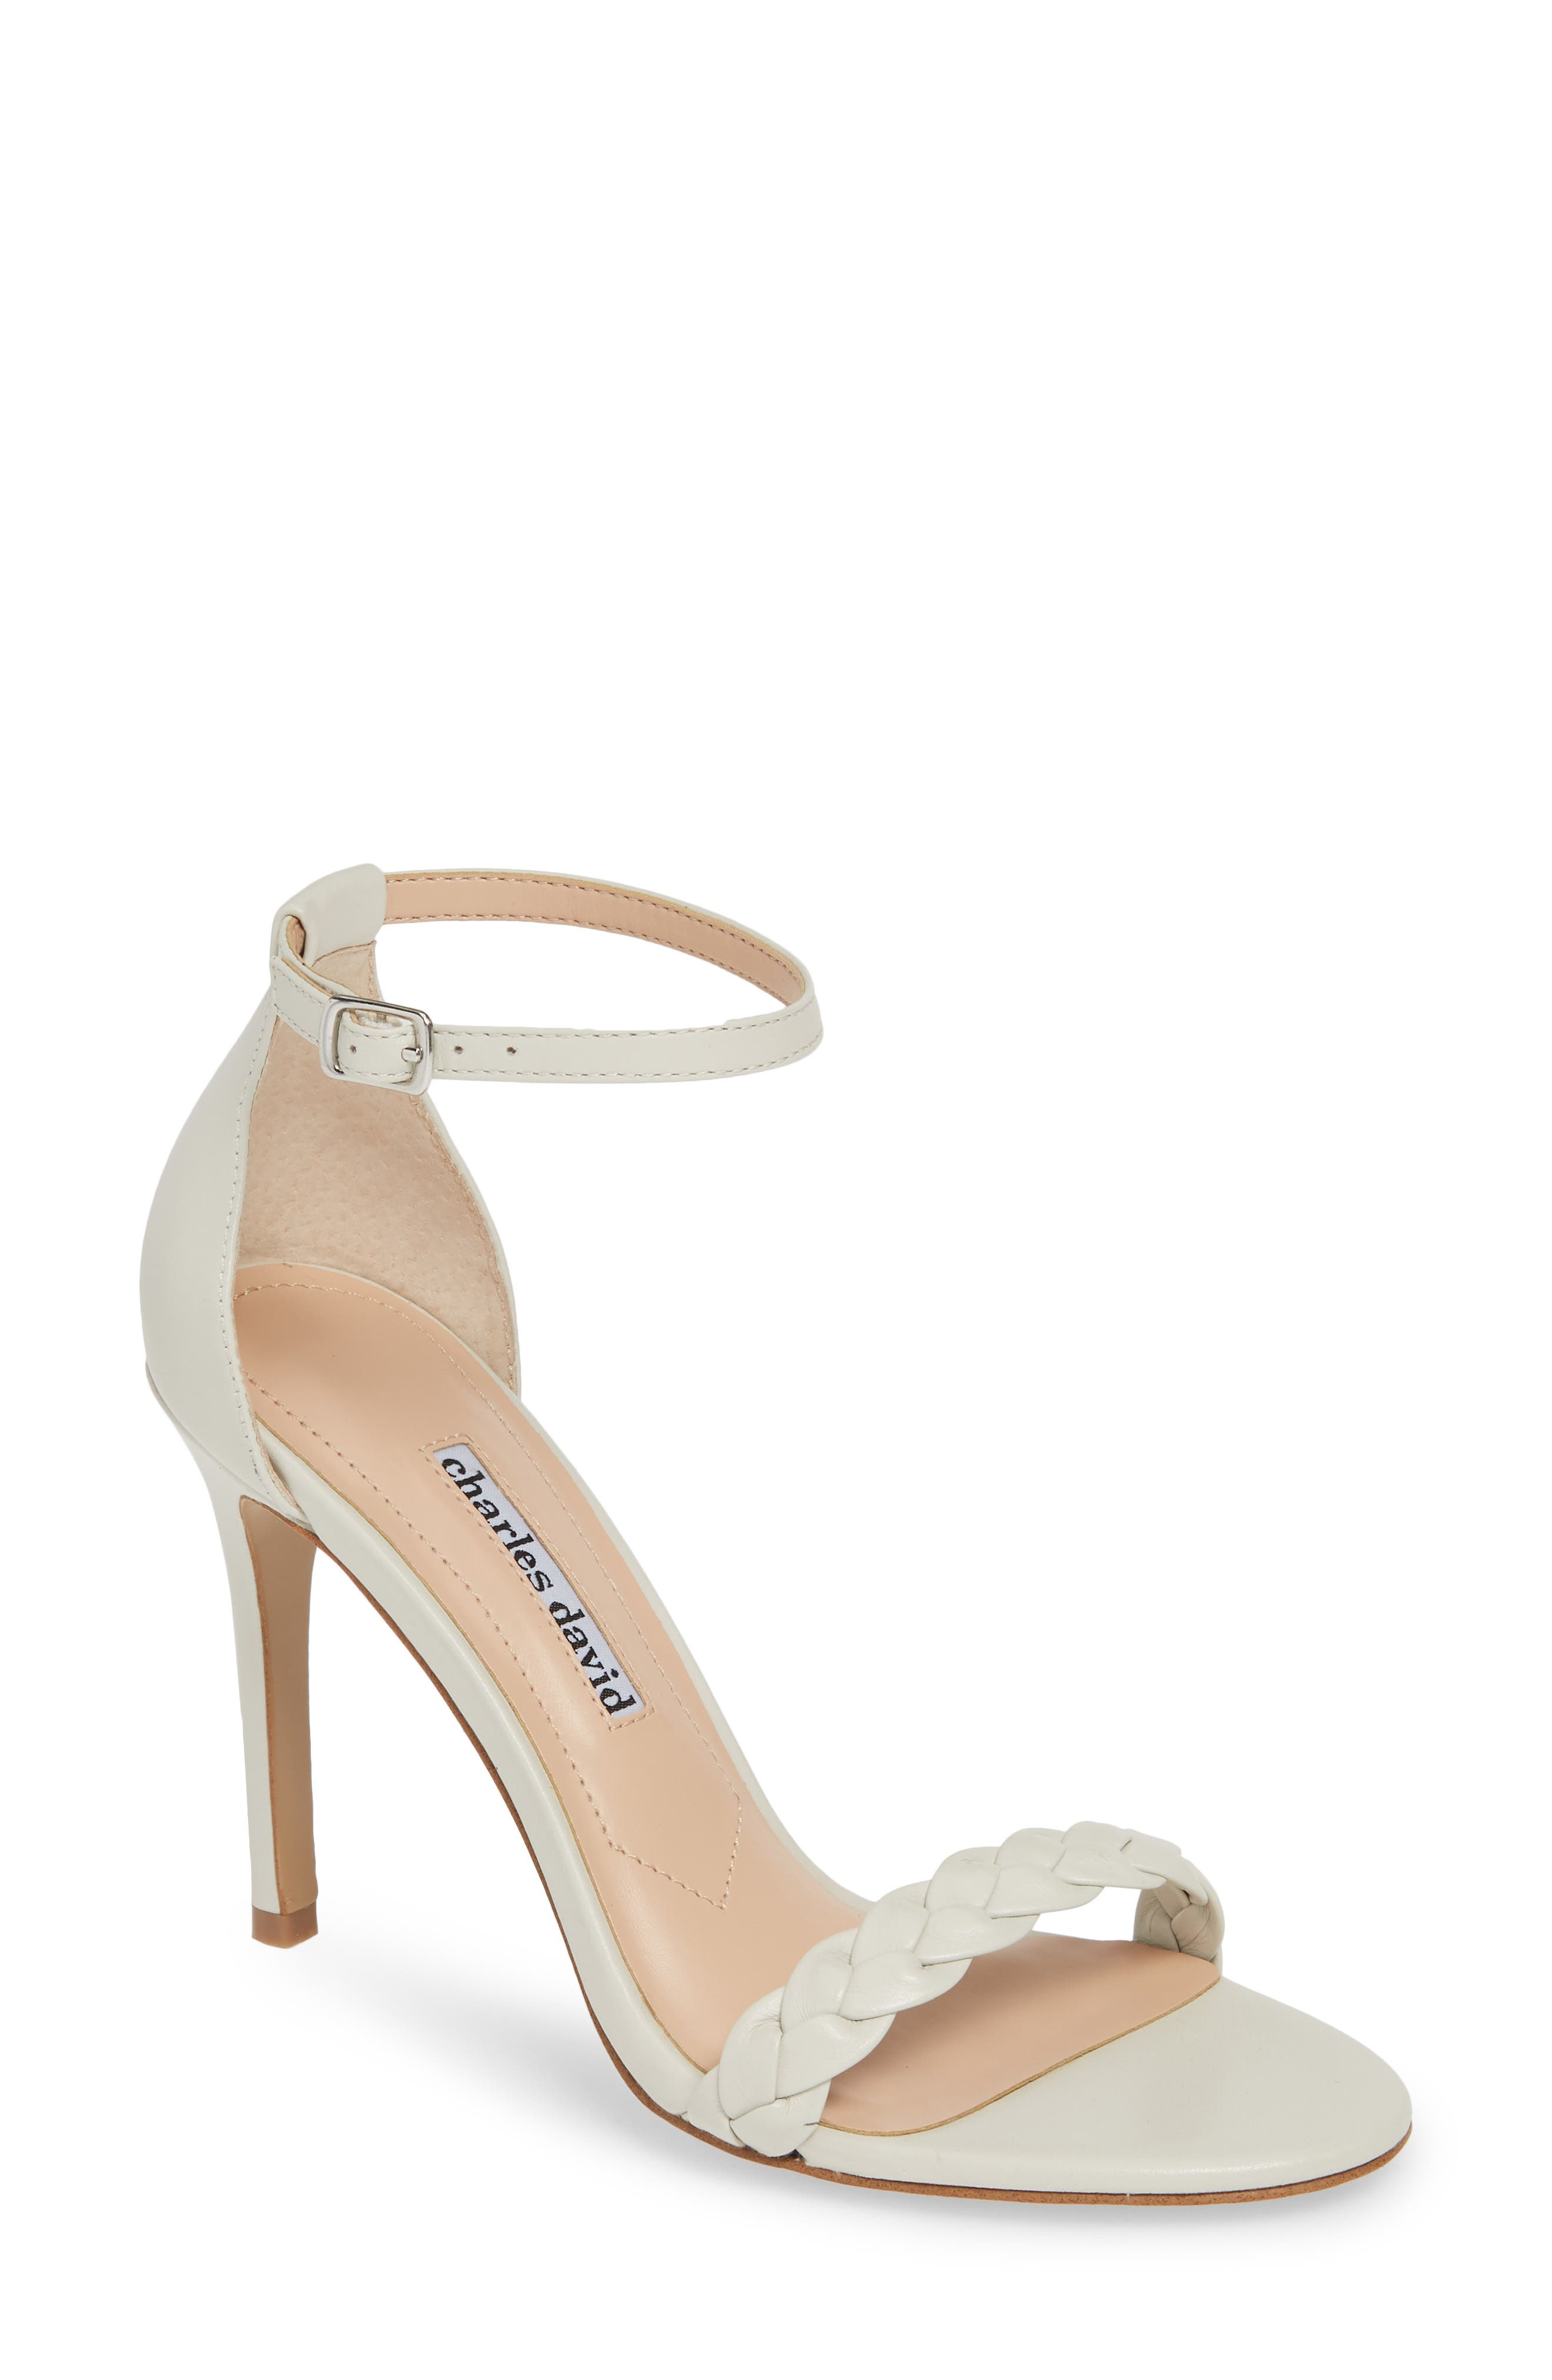 Charles David Sandals CAMOMILE BRAIDED ANKLE STRAP SANDAL